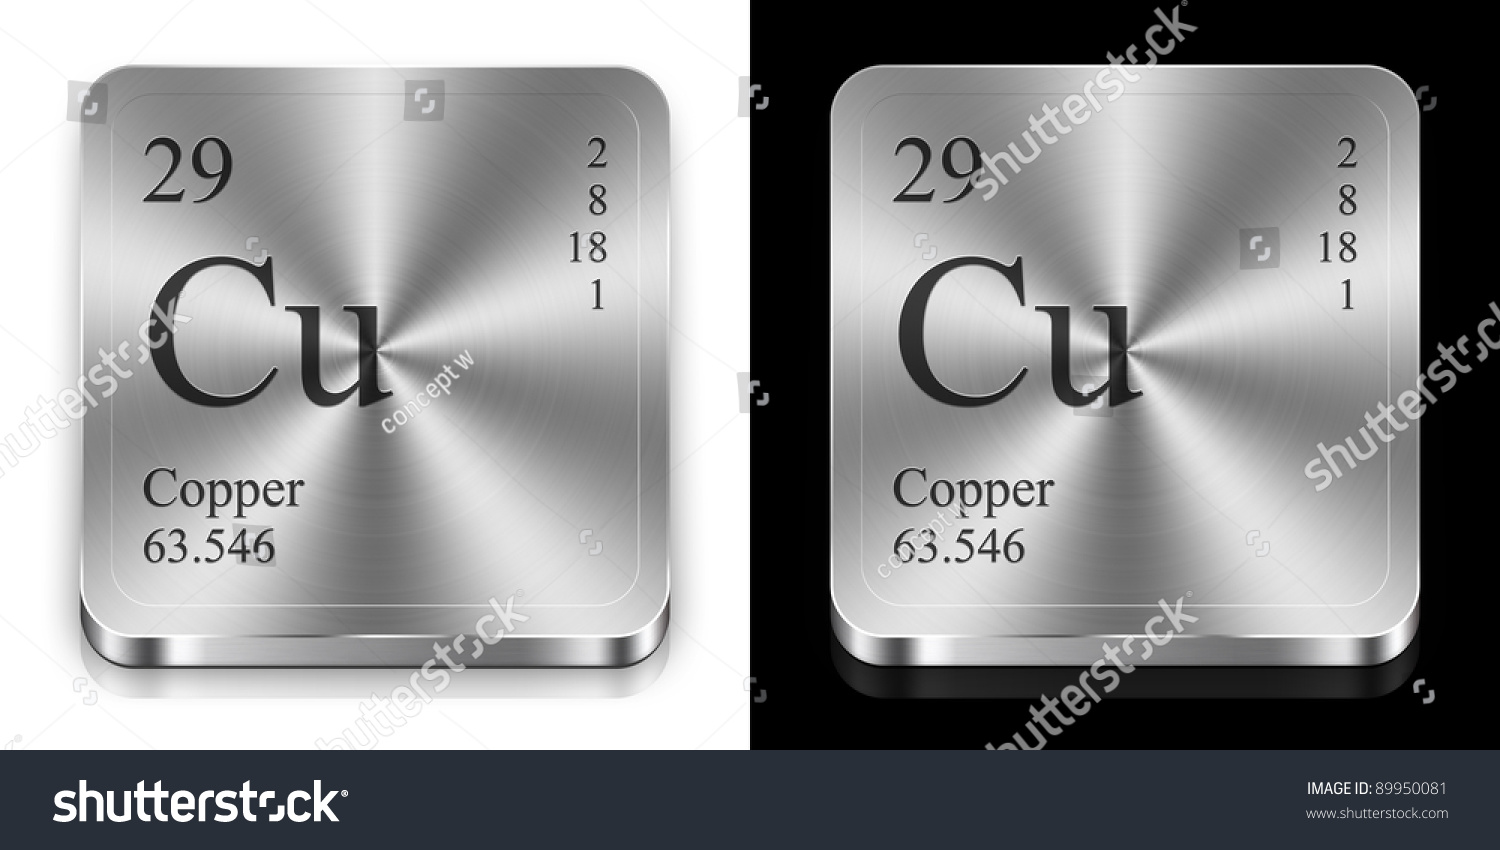 Copper element periodic table image collections periodic table copper element periodic table two metal stock illustration copper element of the periodic table two metal gamestrikefo Gallery